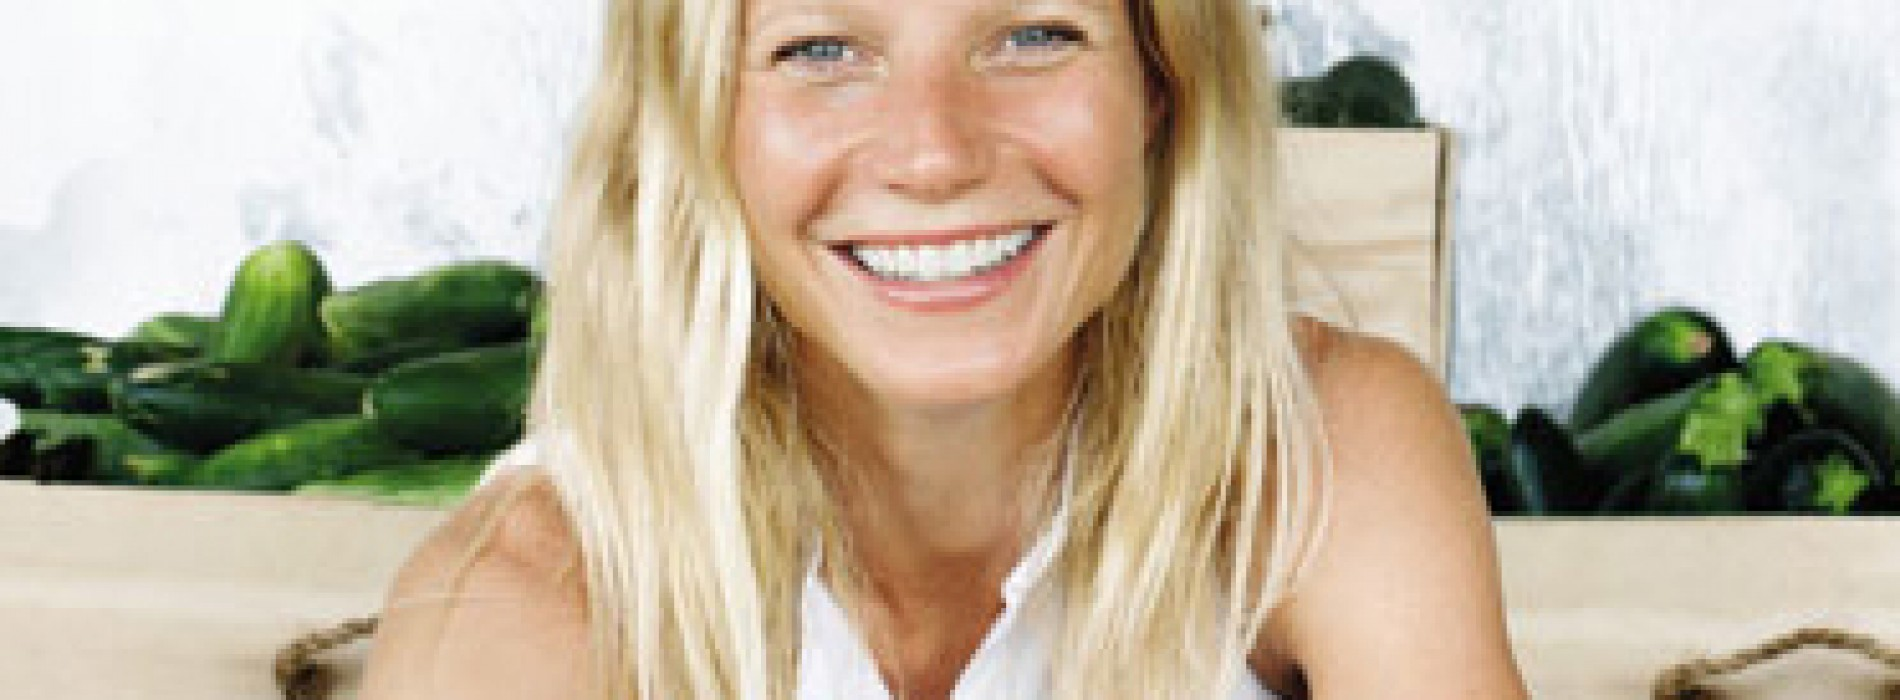 Giveaway: It's All Good by Gwyneth Paltrow